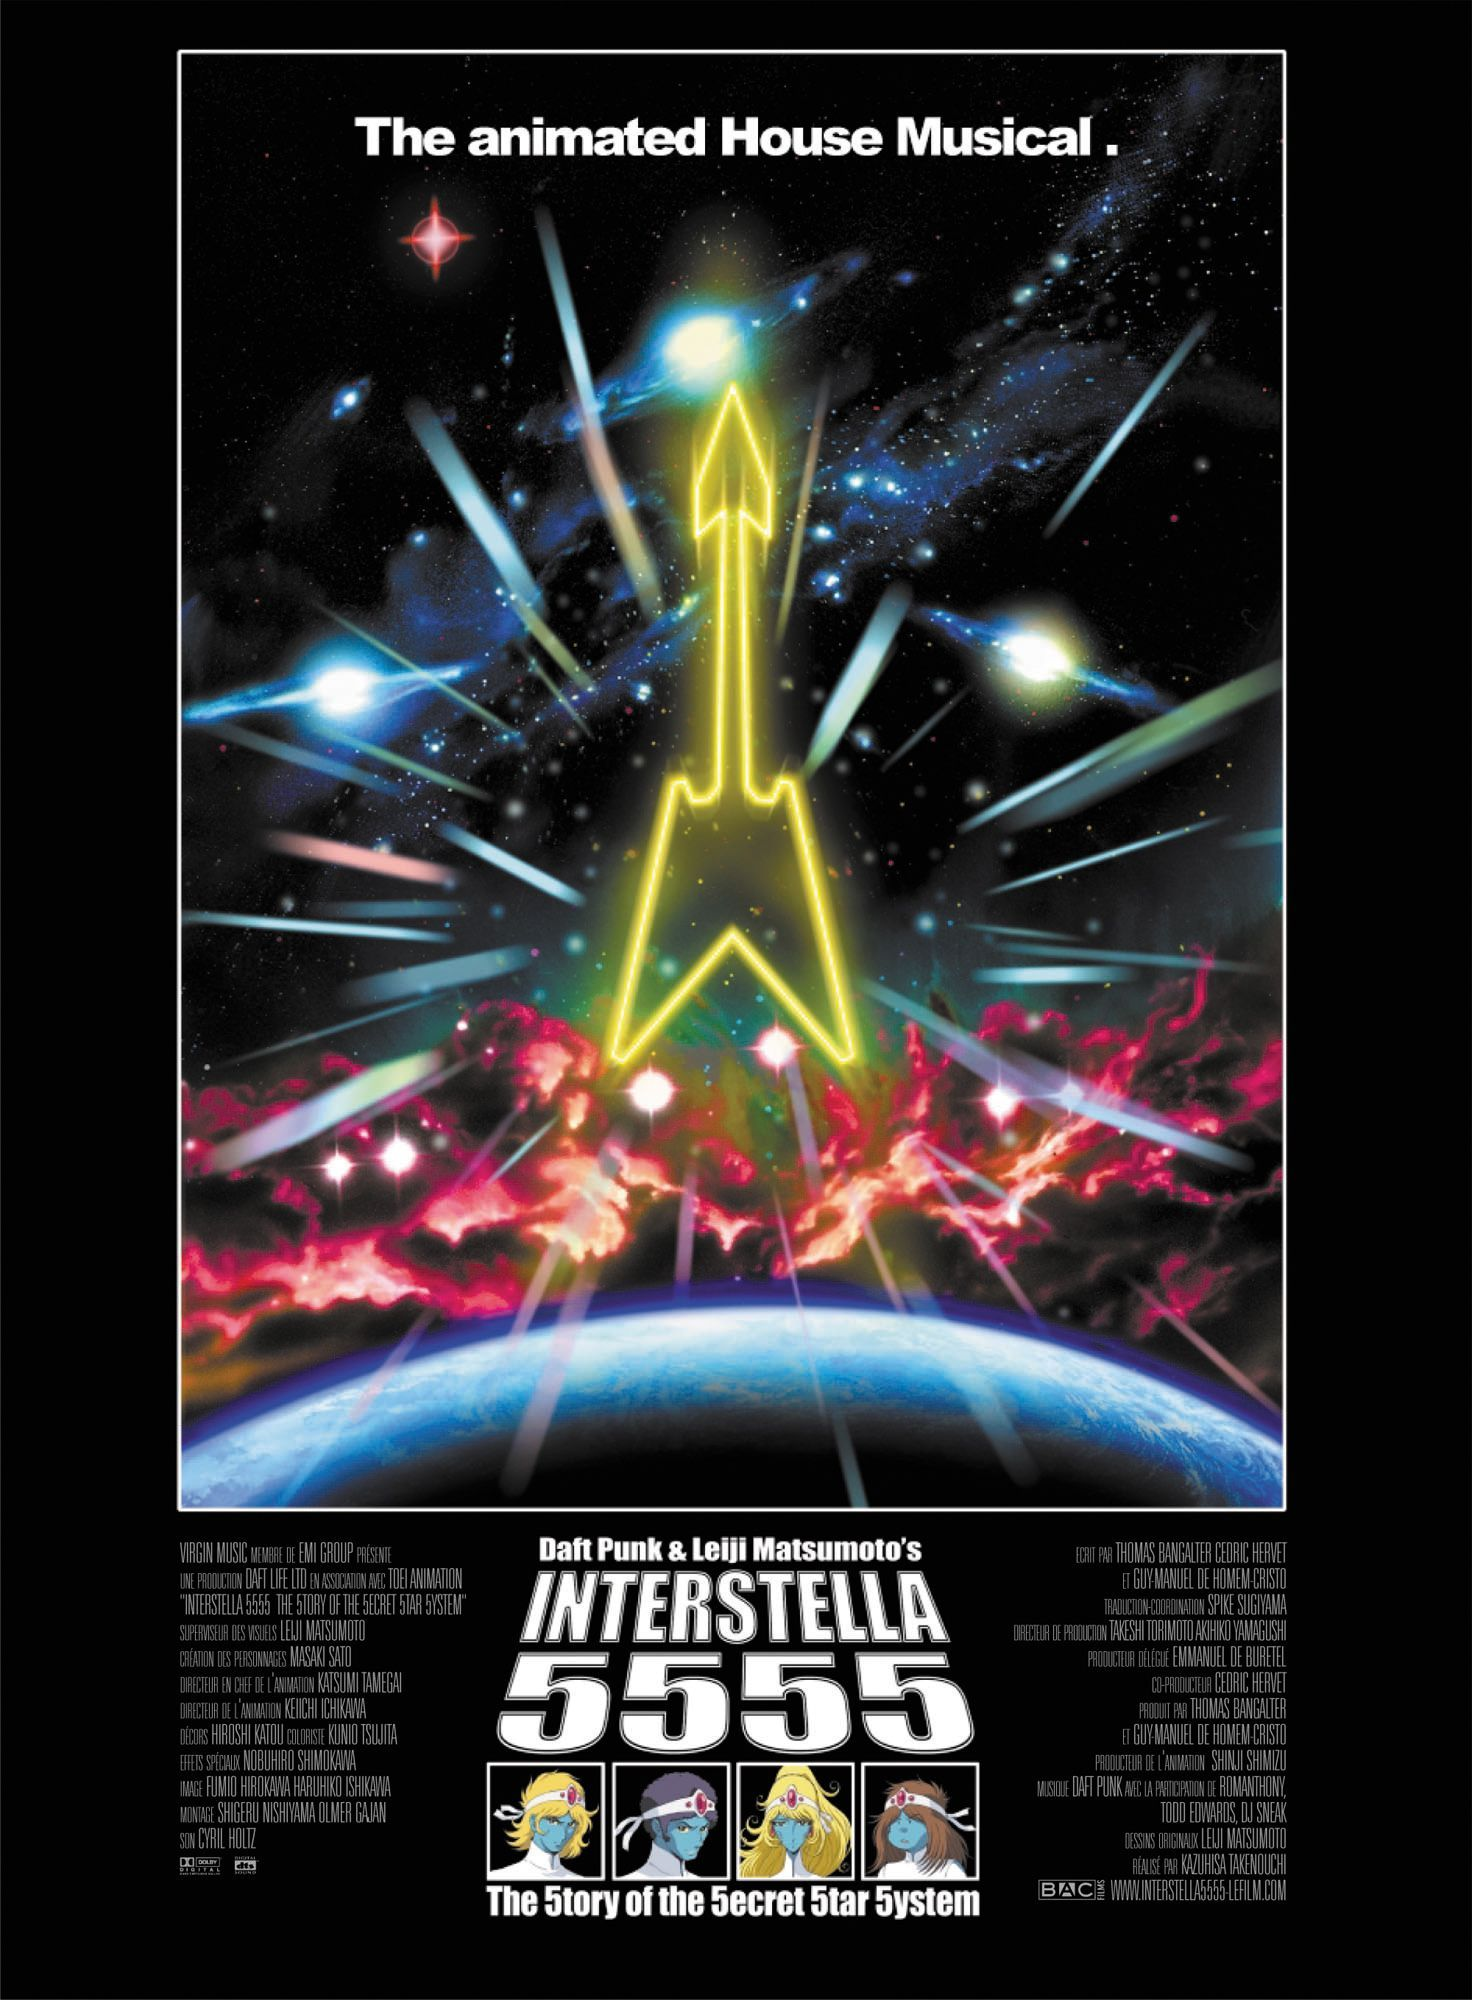 Interstella 5555 (With images) Daft punk, Anime films